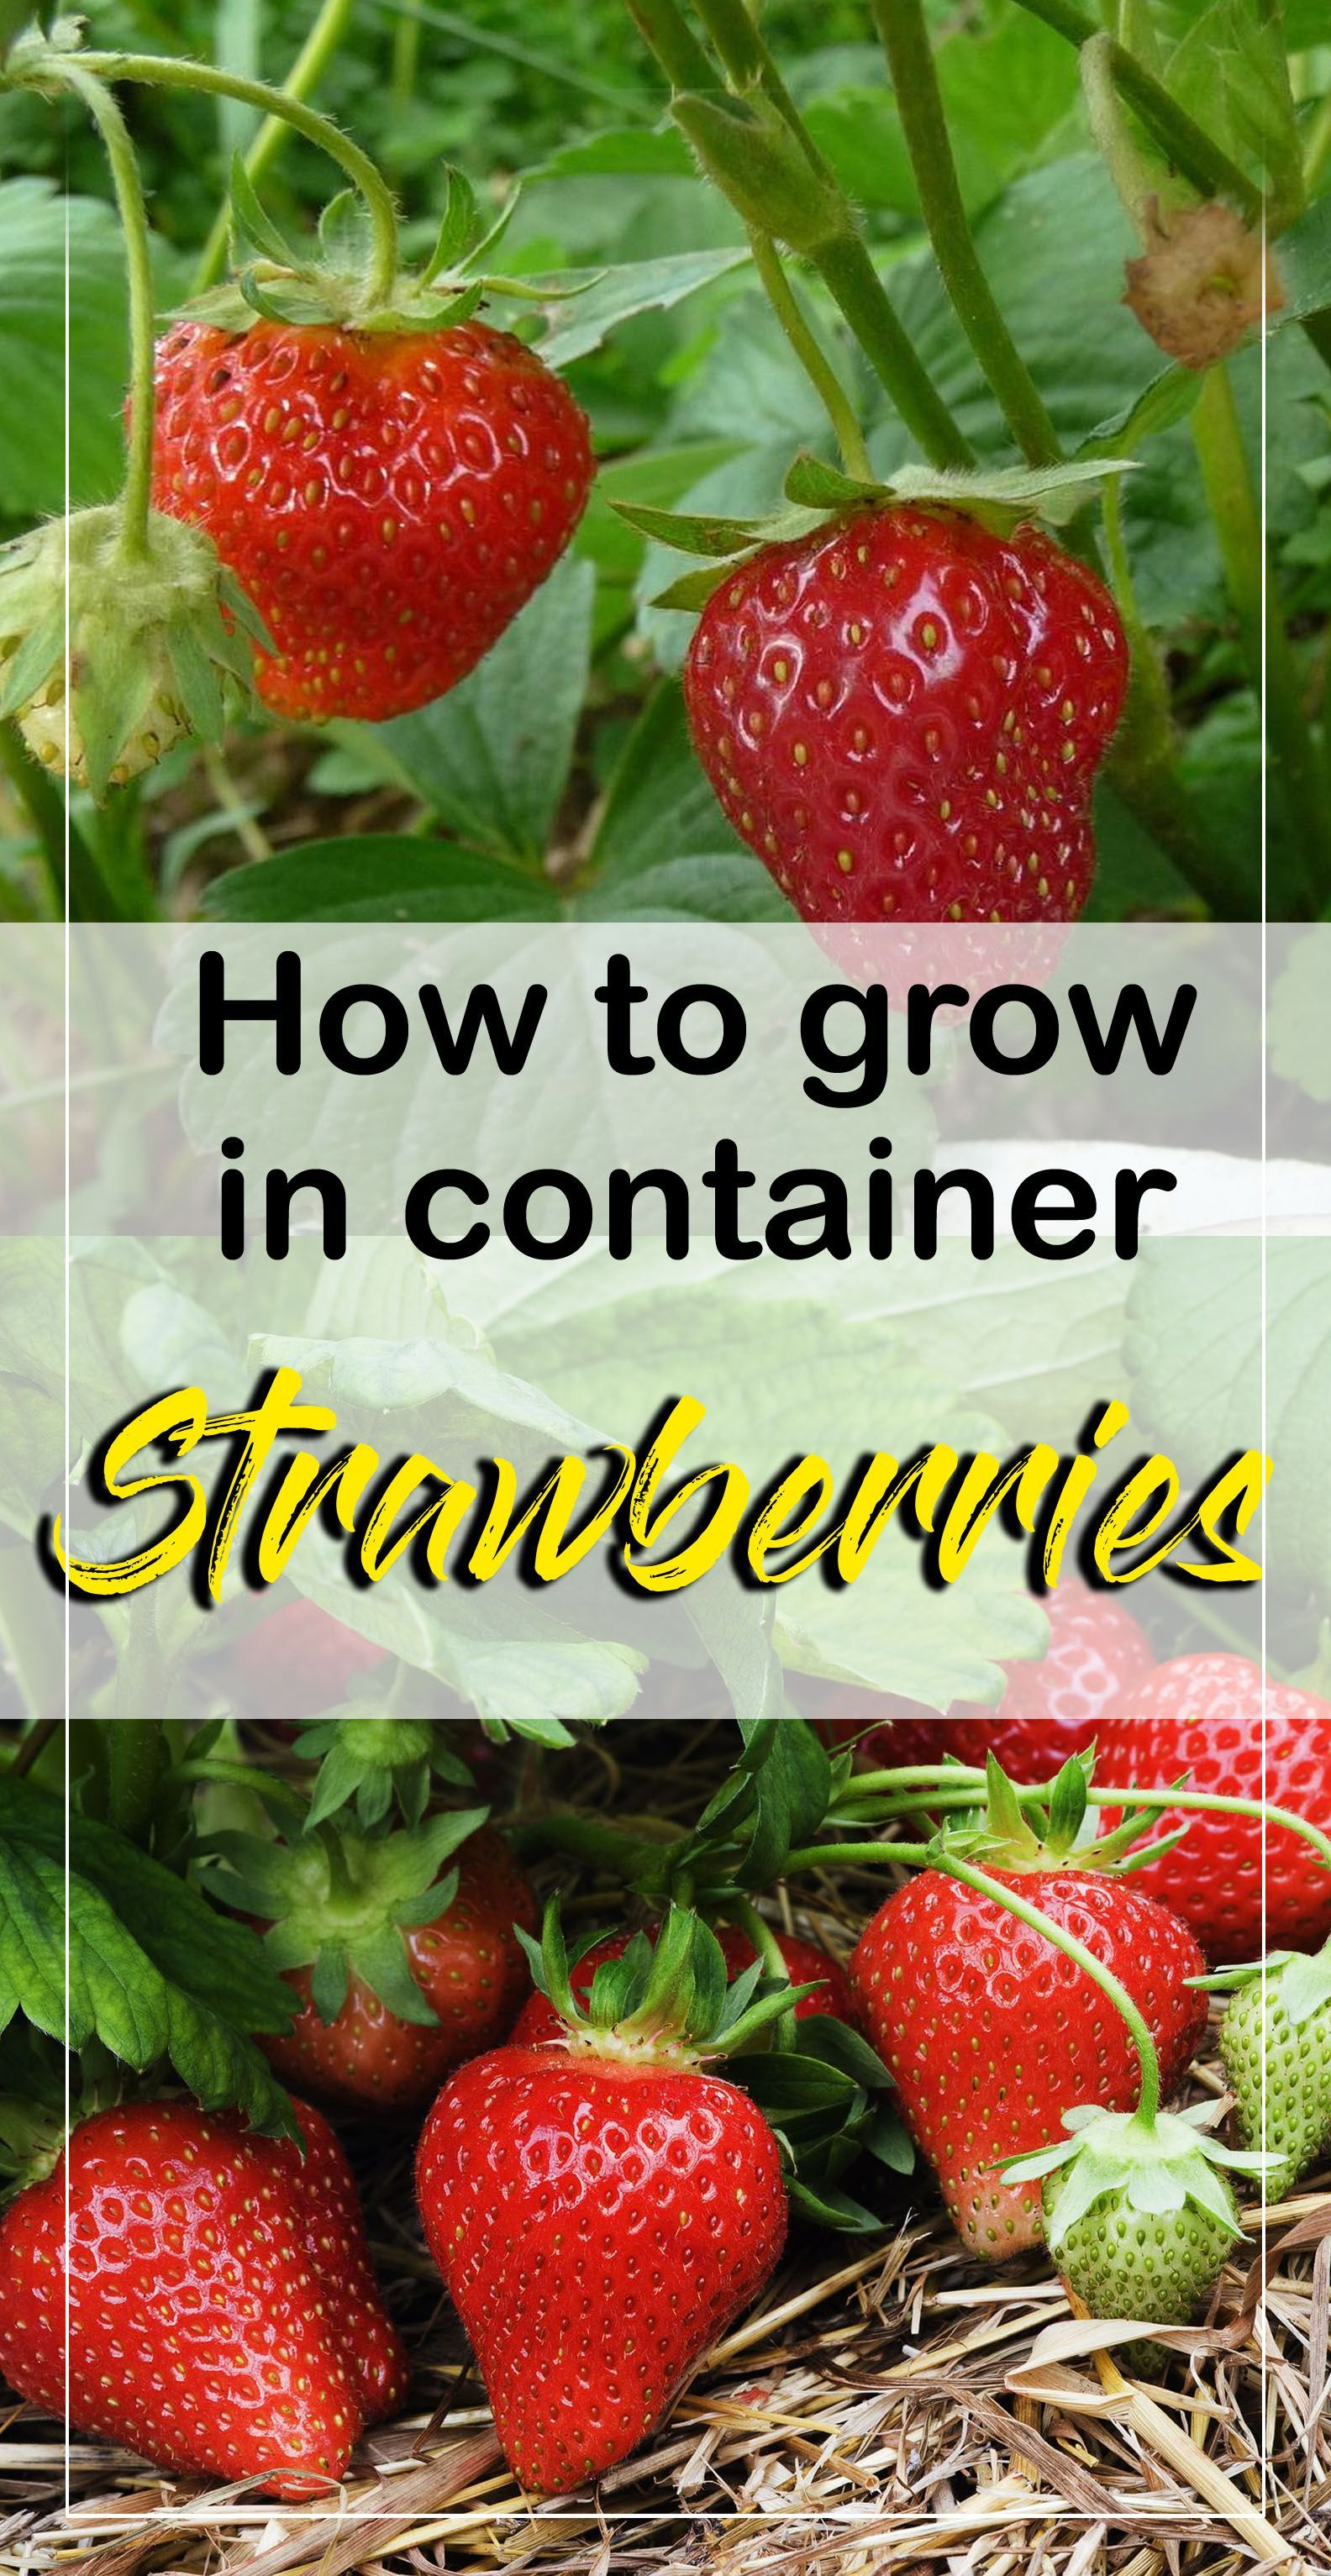 17 Adorable Container Garden Strawberries To Bring Unique Look Growing Strawberries In Containers Strawberries In Containers Growing Strawberries